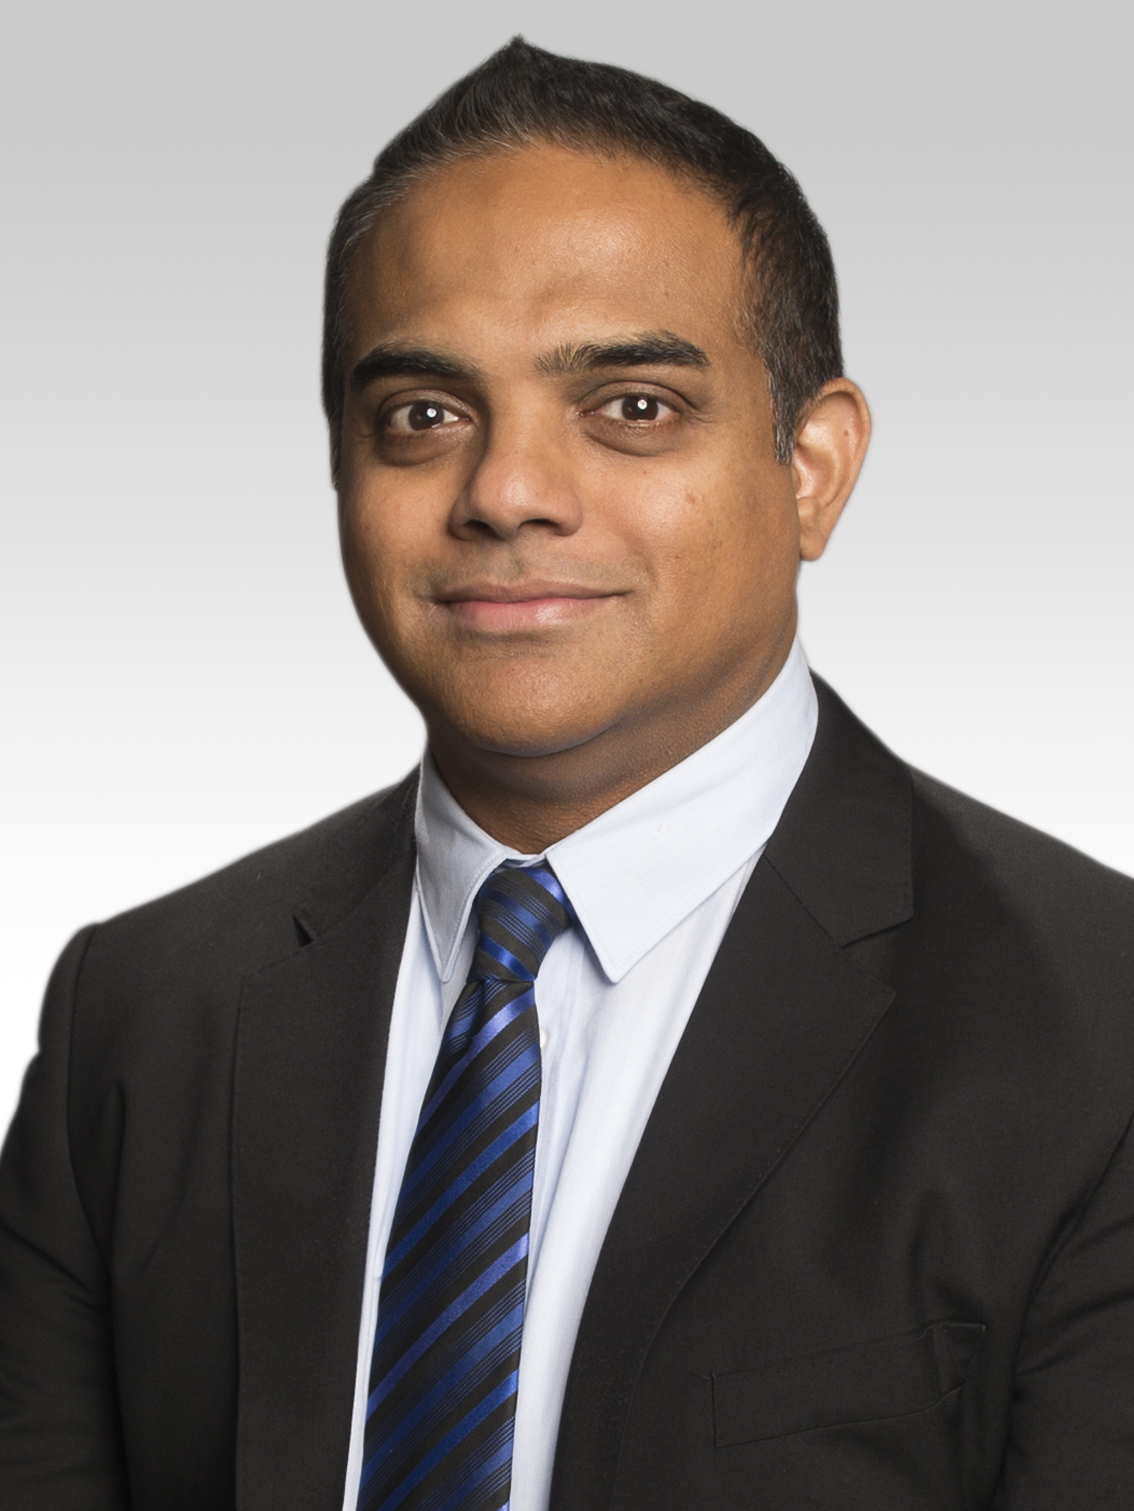 Dr. Varghese Cherian Joins New York Imaging Specialists